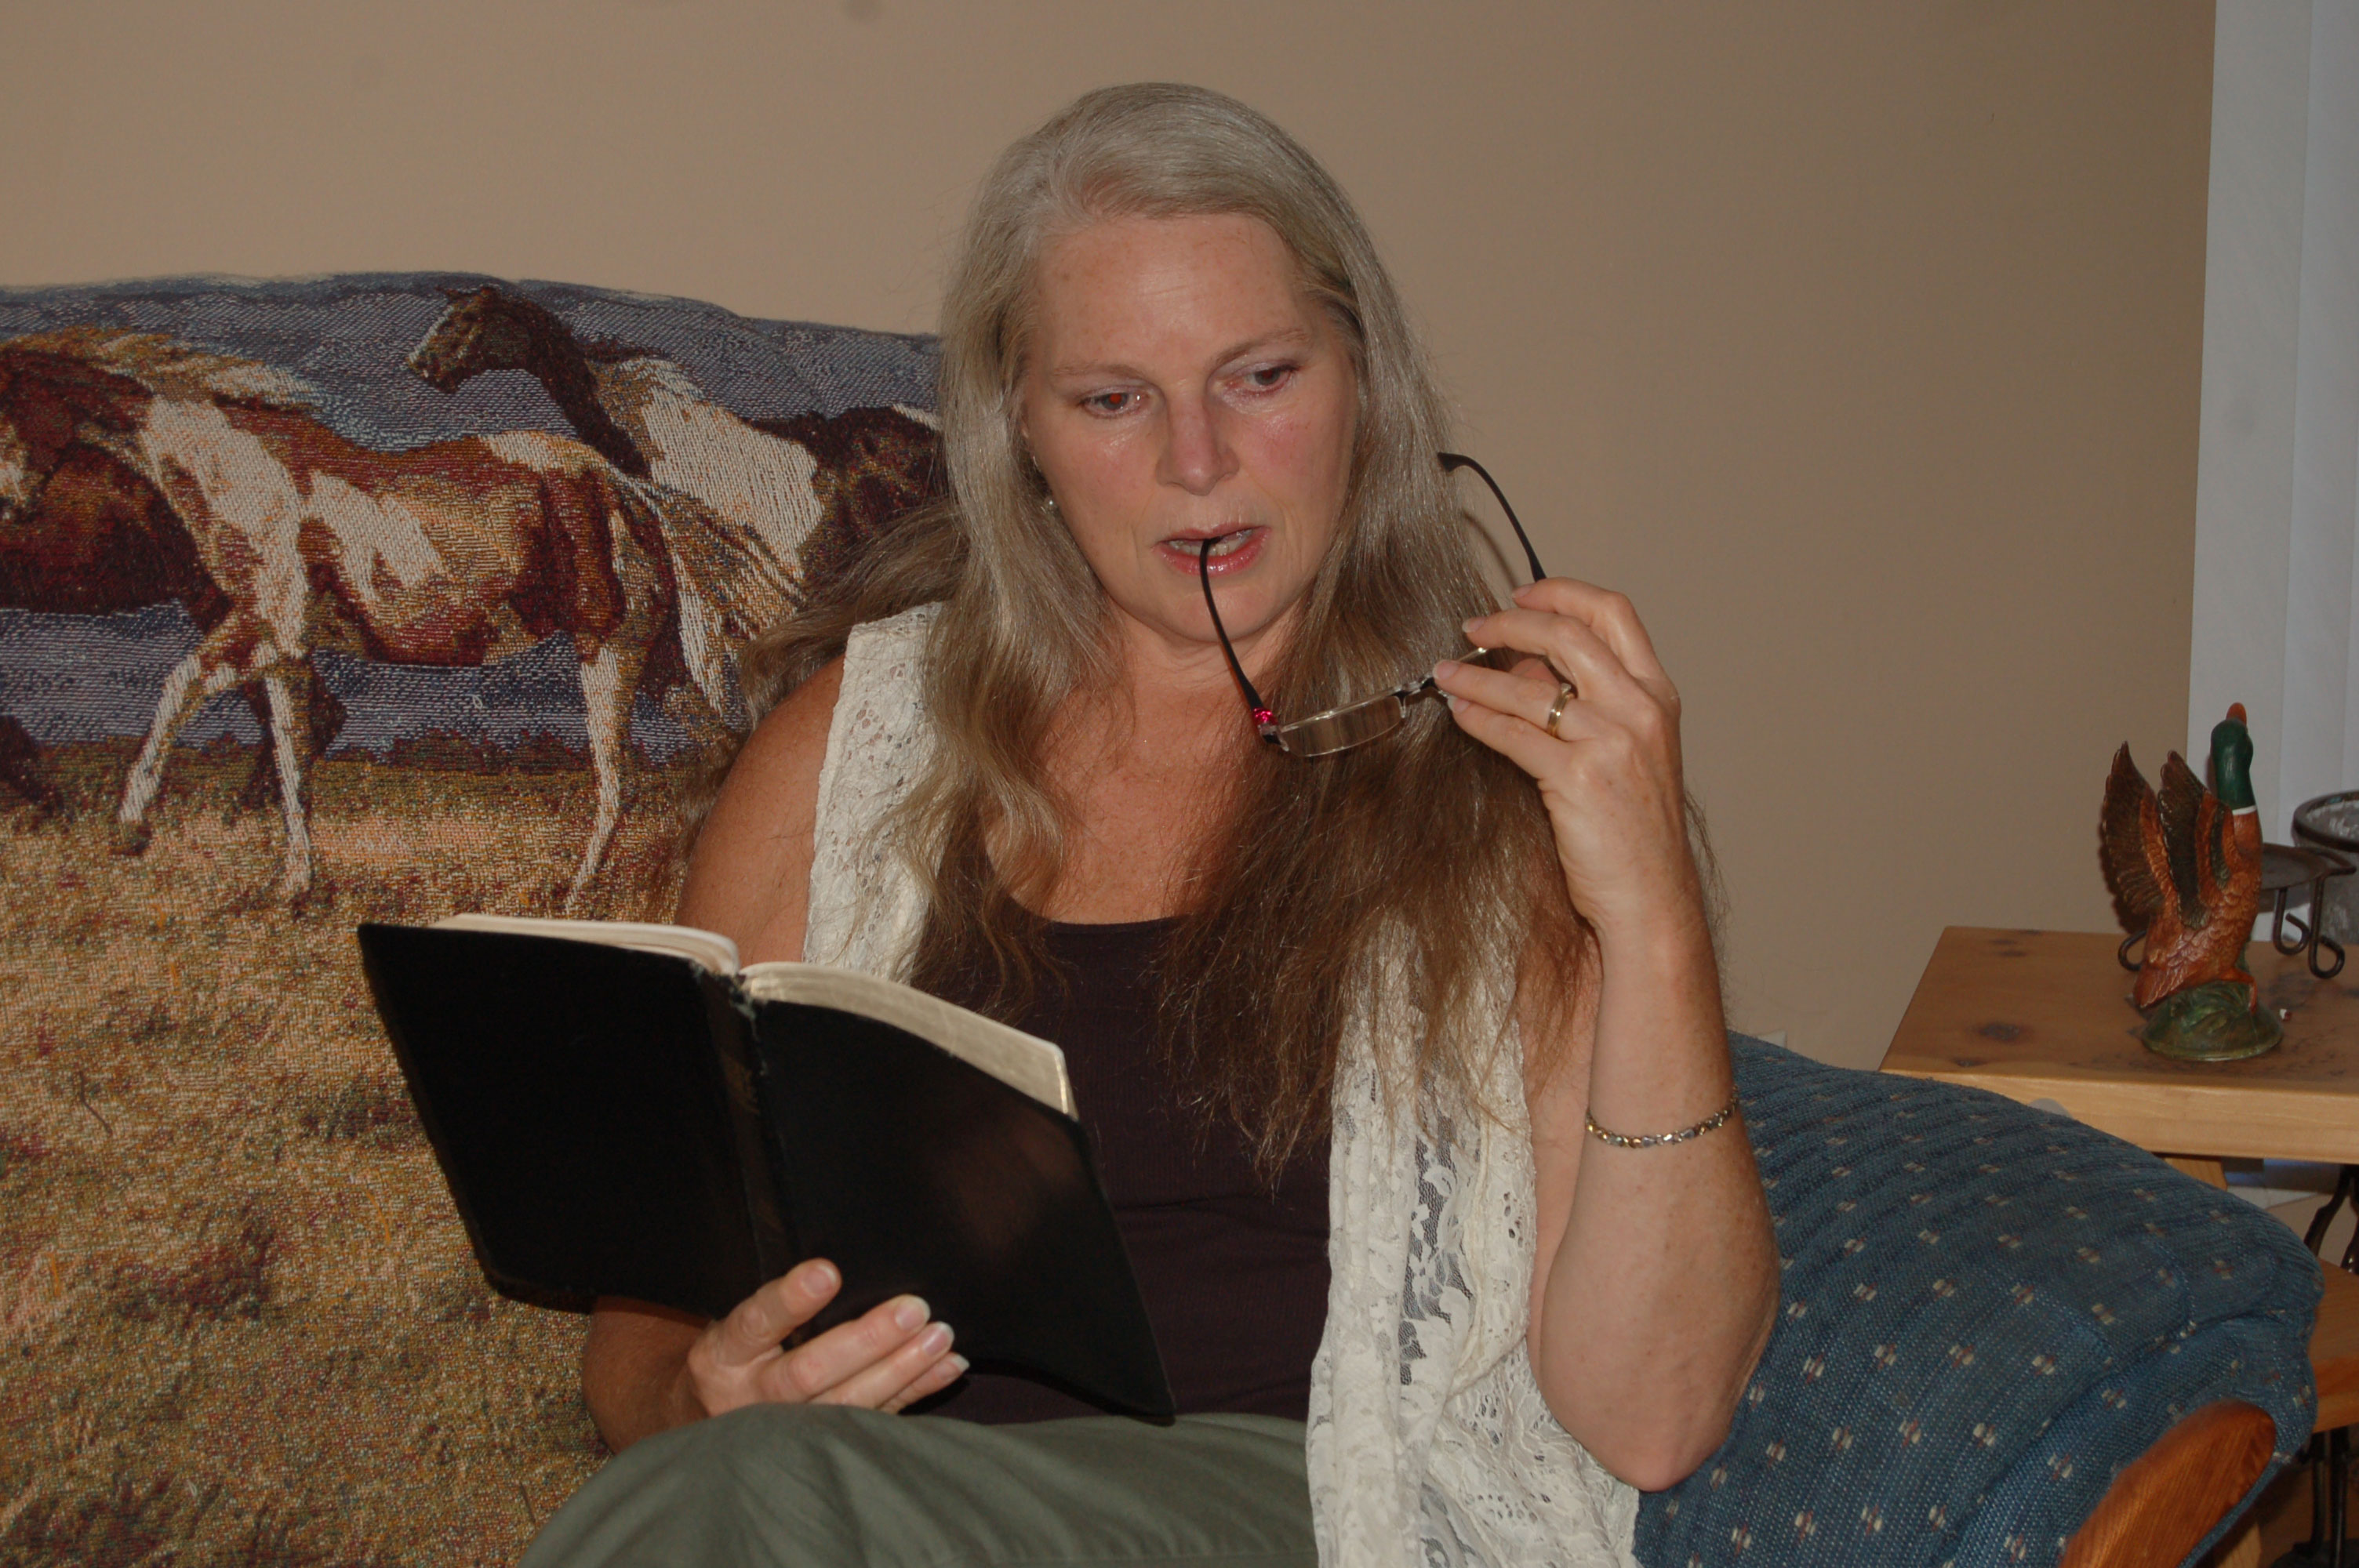 Christian Stock Photos by Linda Bateman - Woman Thinking About Bible Passage While Sitting on Sofa